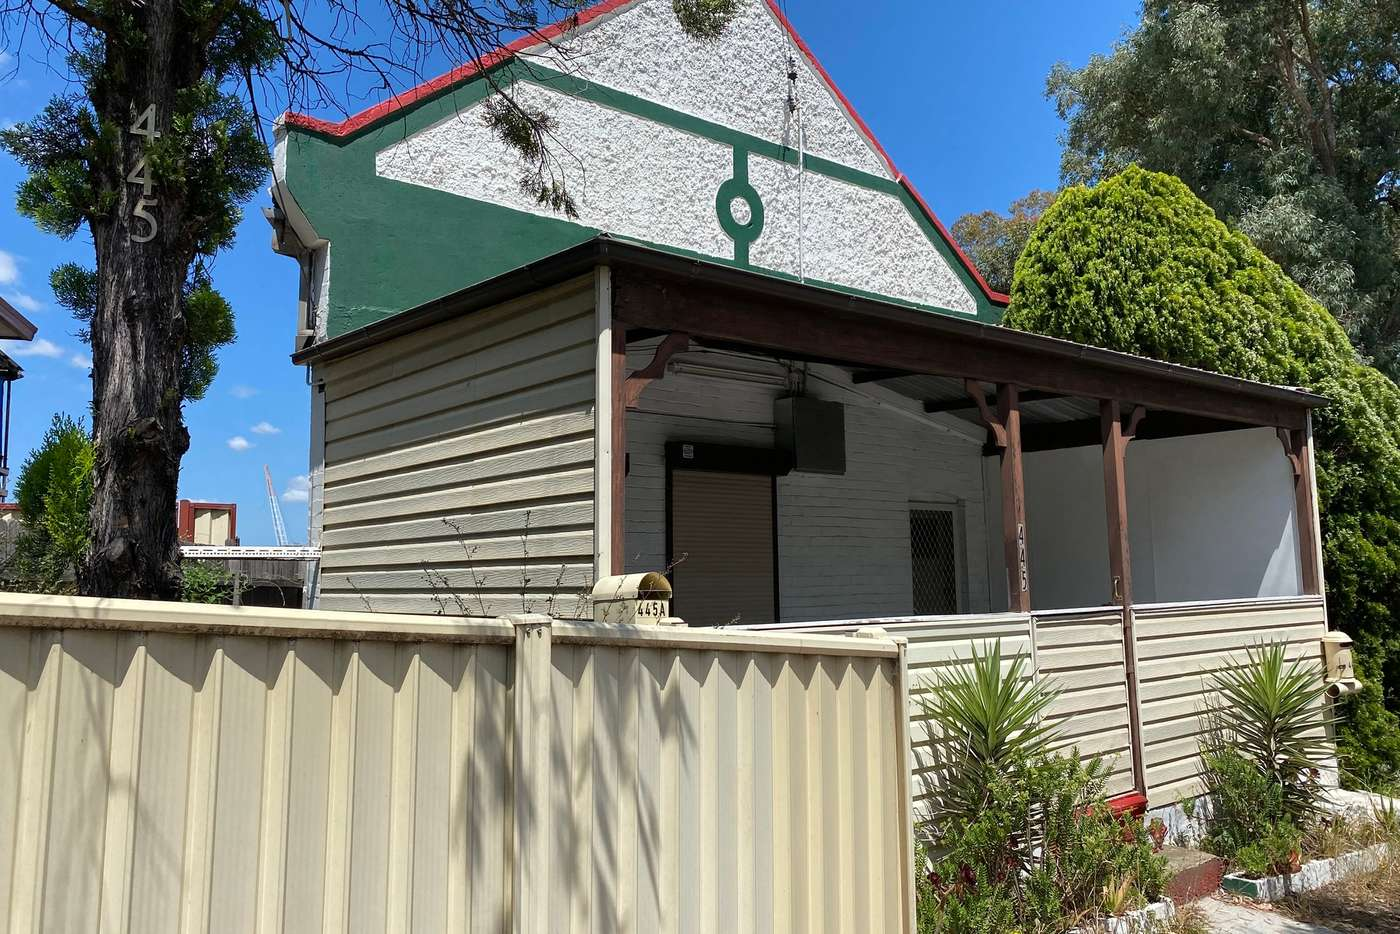 Main view of Homely house listing, 445 Seven Hills Road, Seven Hills NSW 2147